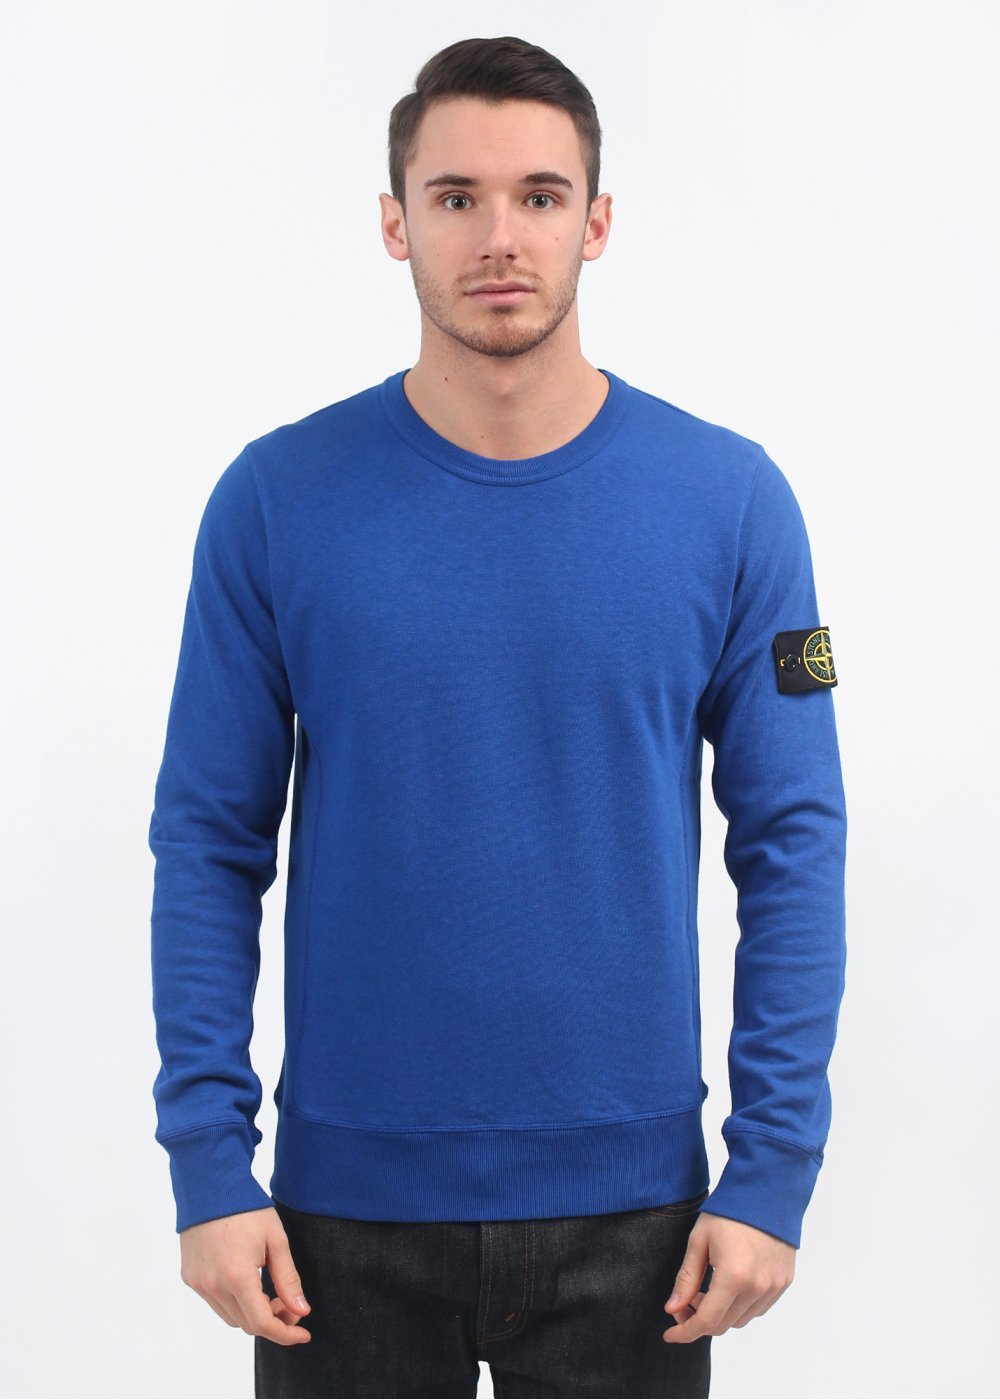 Shop the latest Stone Island at END. - the leading retailer of globally sourced menswear. New products added daily.